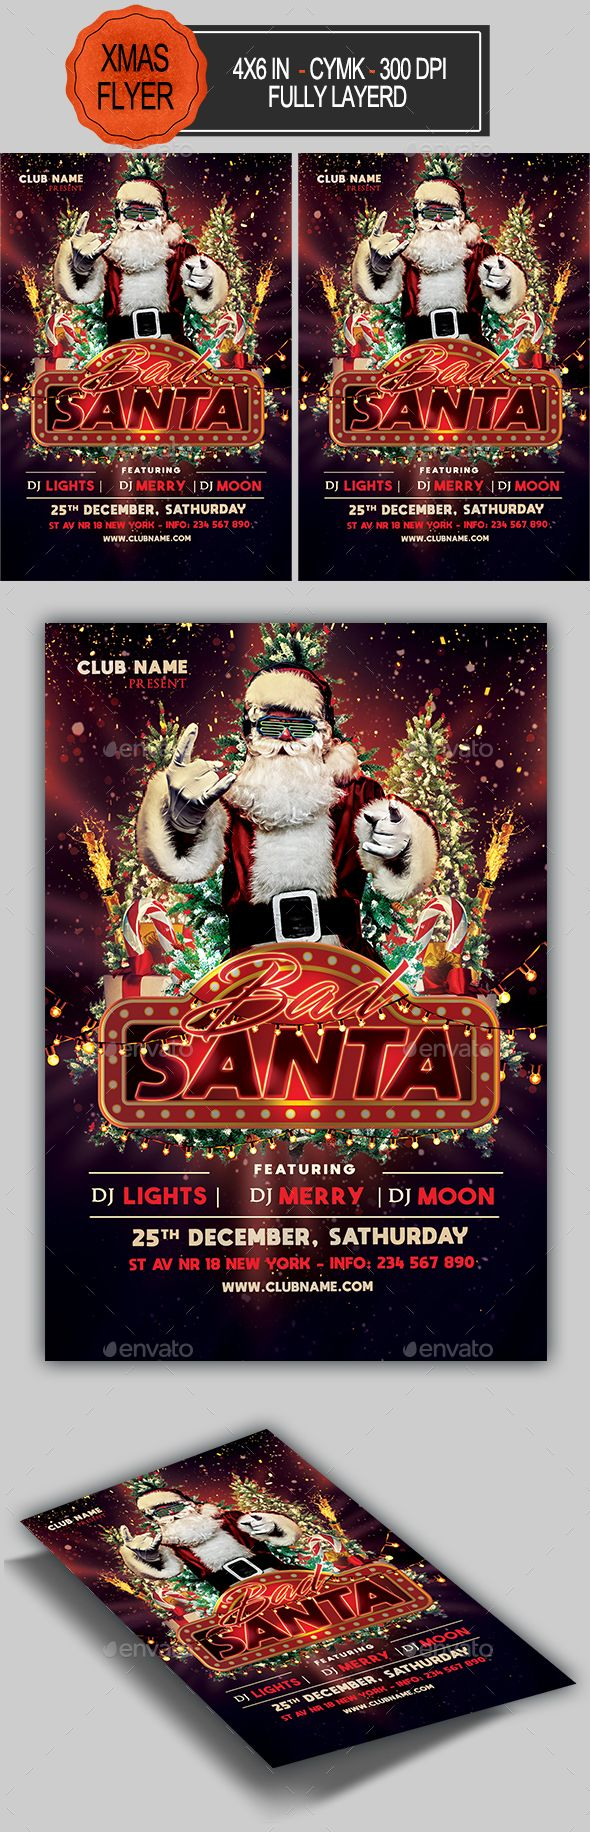 Bad Santa Flyer Template. Fully editable professional template for a holiday flyer. #FlyerTemplate #flyer #holiday #GraphicTemplate #design #PrintDesign #BadSanta #christmas #ChristmasBash #ChristmasCard #ChristmasFlyer #ChristmasParty #ChristmasPoster #ChristmasTree #GiftBox #merry #MerryChristmas #navidad #PapaNoel #poster #psd #santa #SantaClaus #snow #stefania #template #ToyDrive #winter #xmas #XmasParty